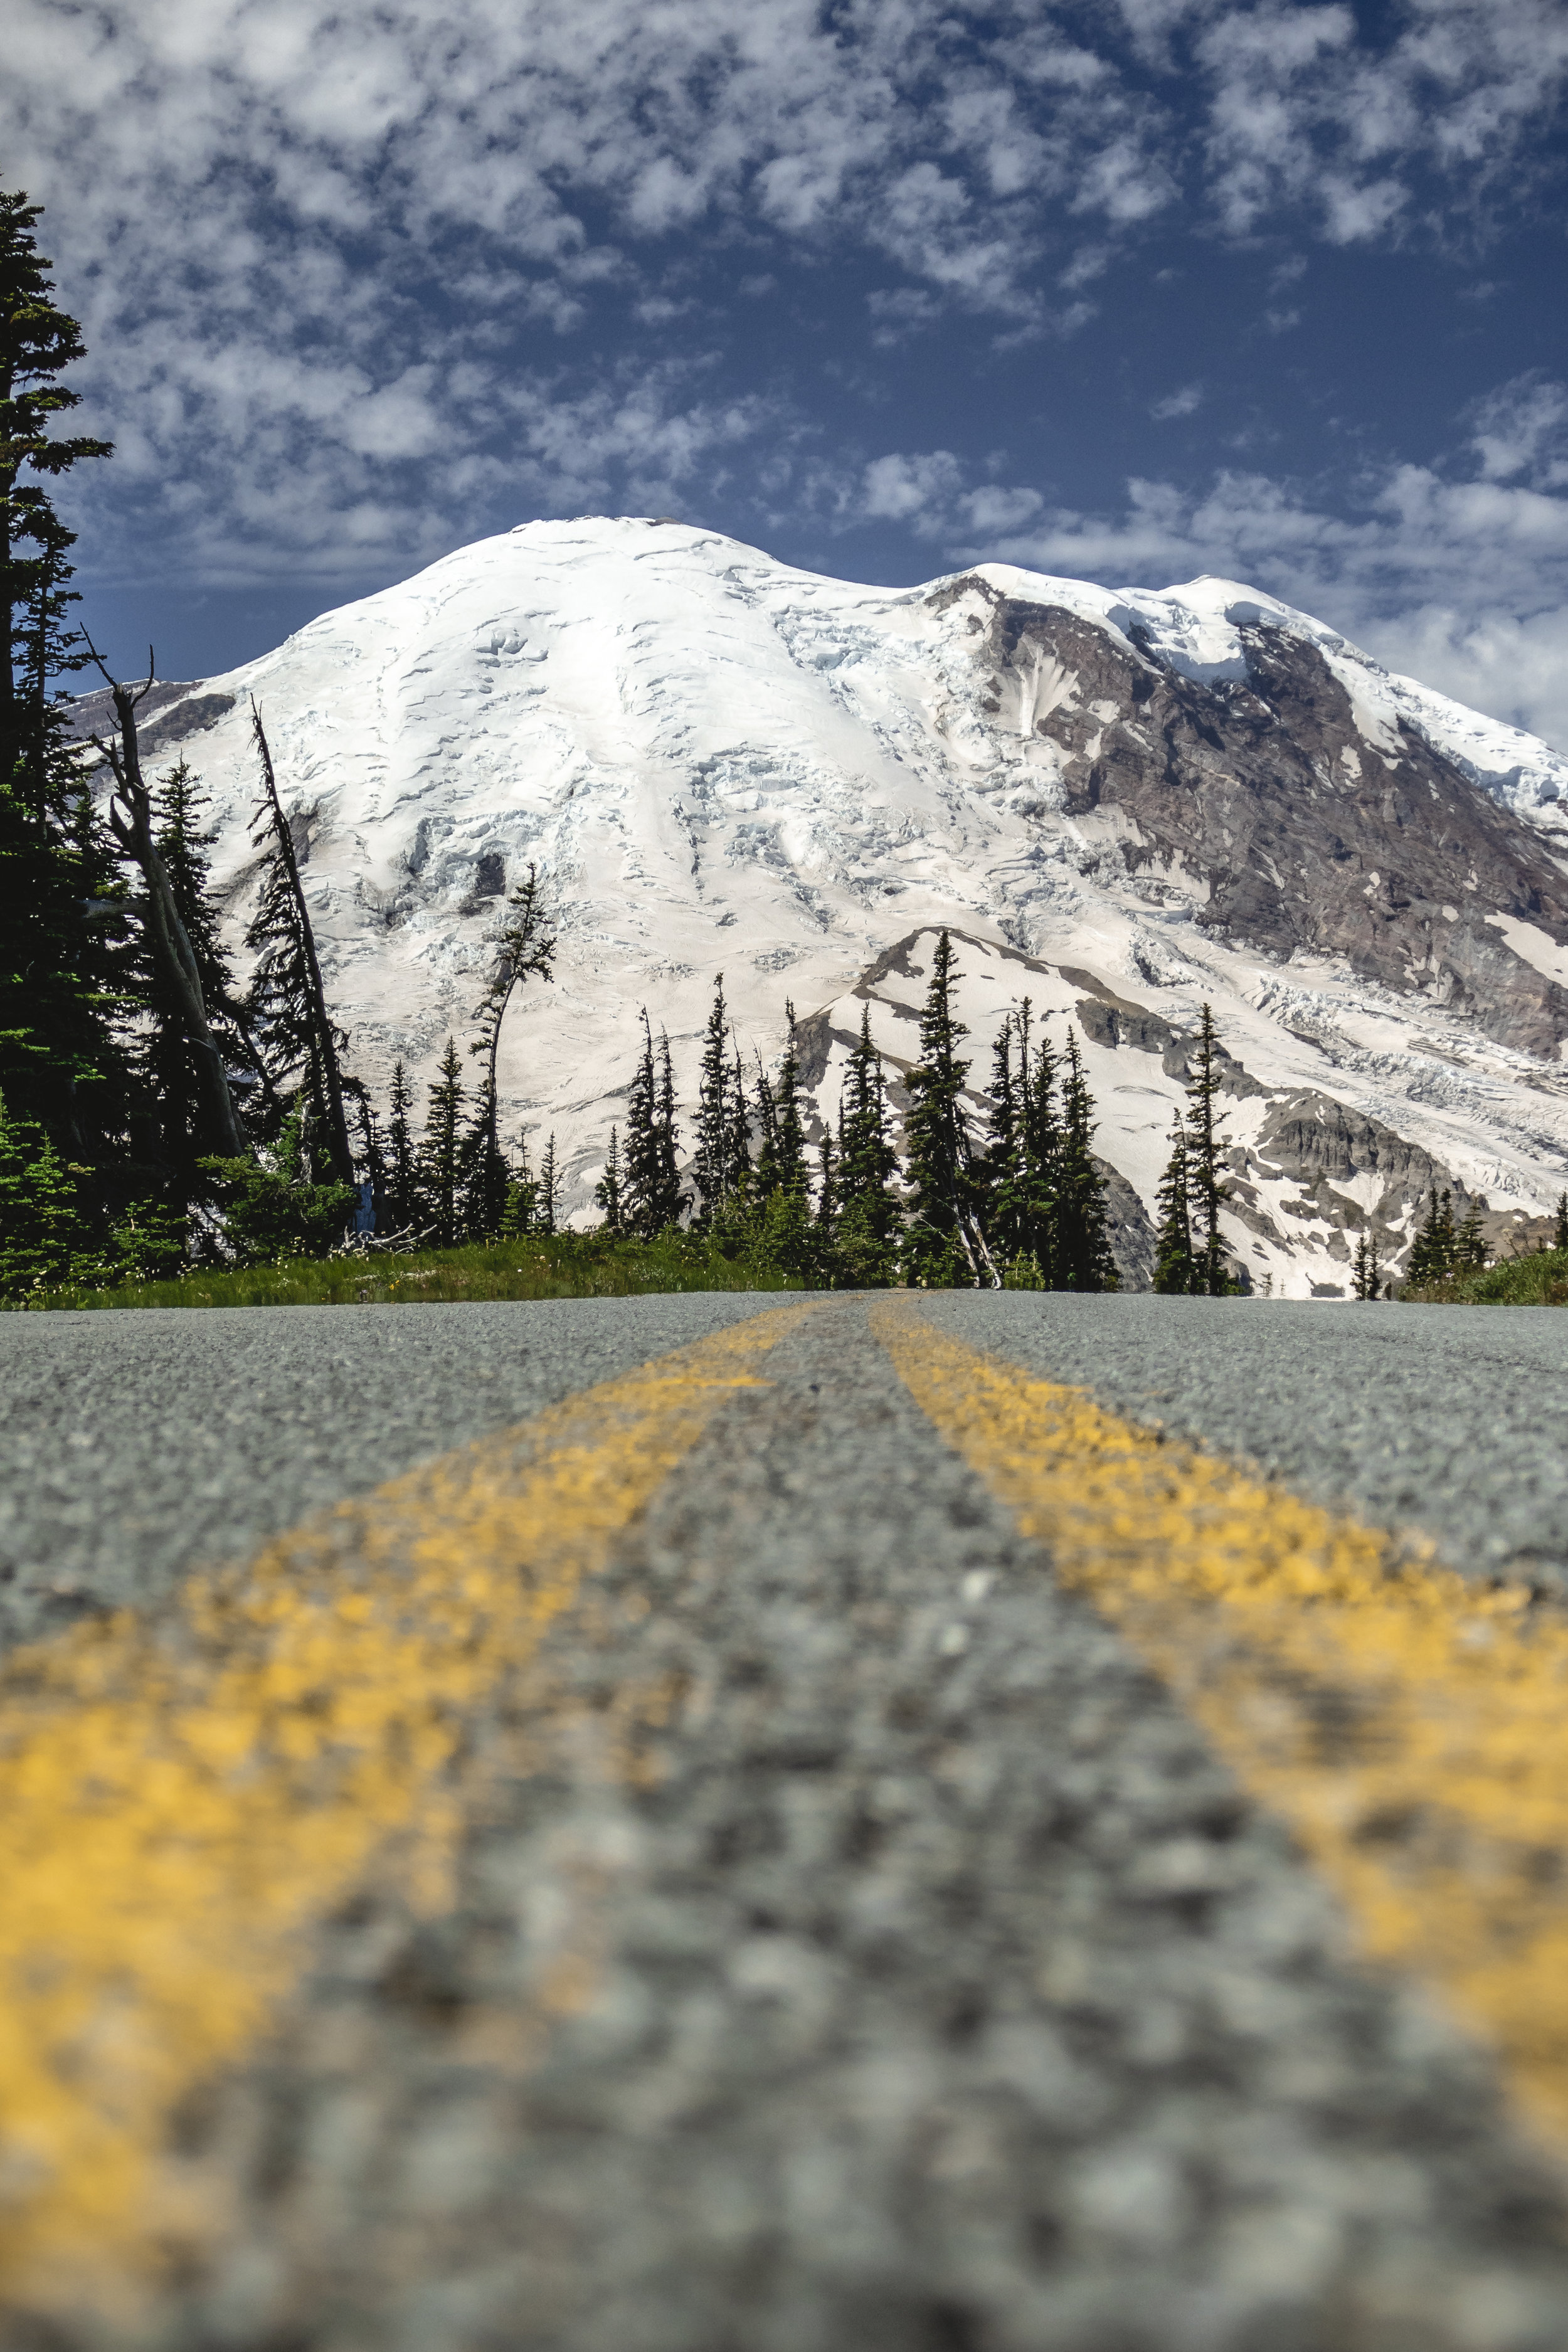 Road_to_Mt_Rainier_with_Artistic_Yellow_Lines_Angle_in_Summer_Season.jpg